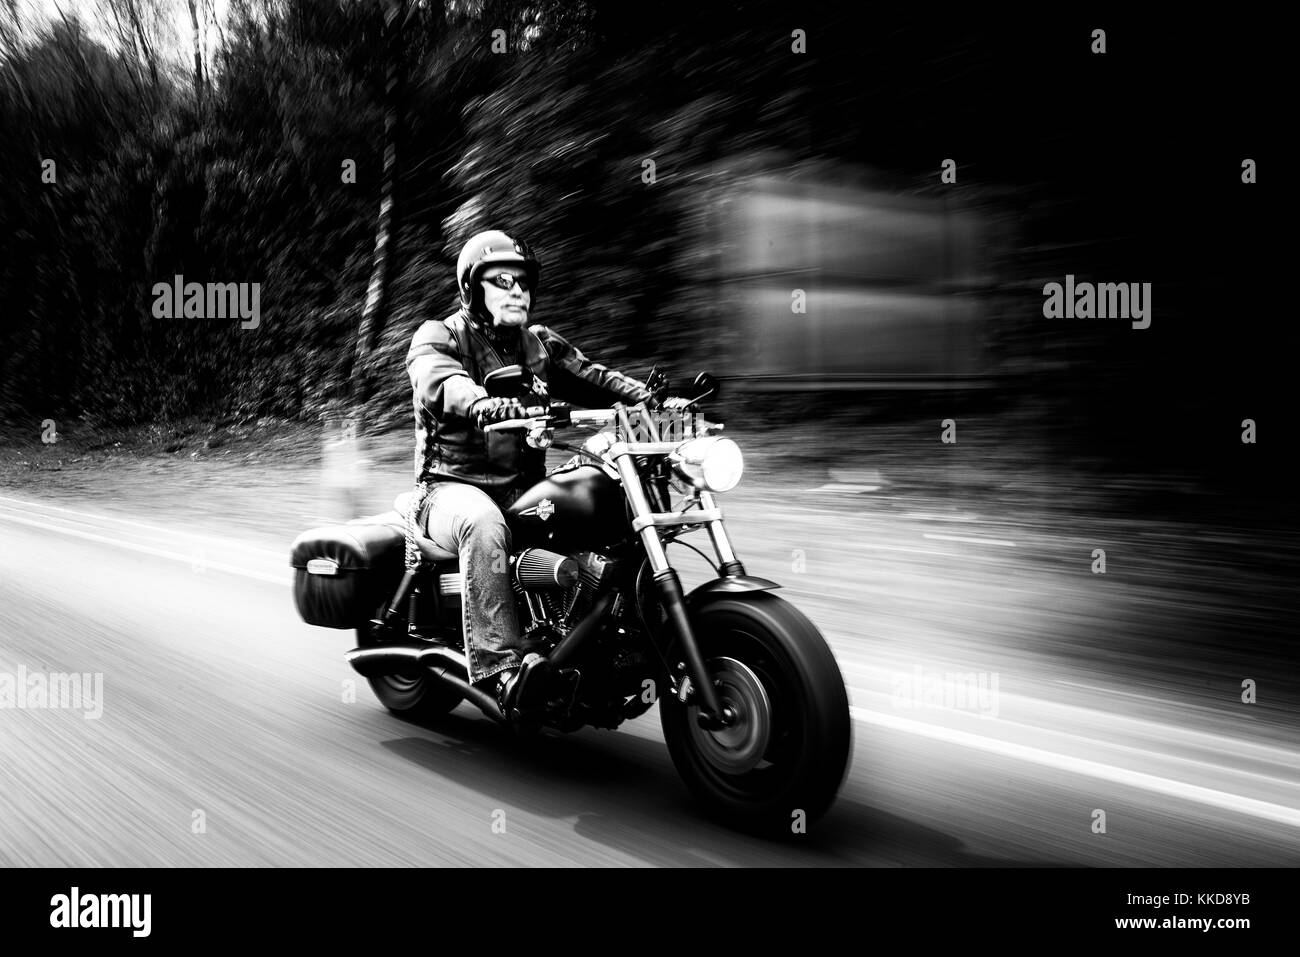 Man with a handlebar moustache riding a Harley Davidson motorcycle with motion blur - Stock Image